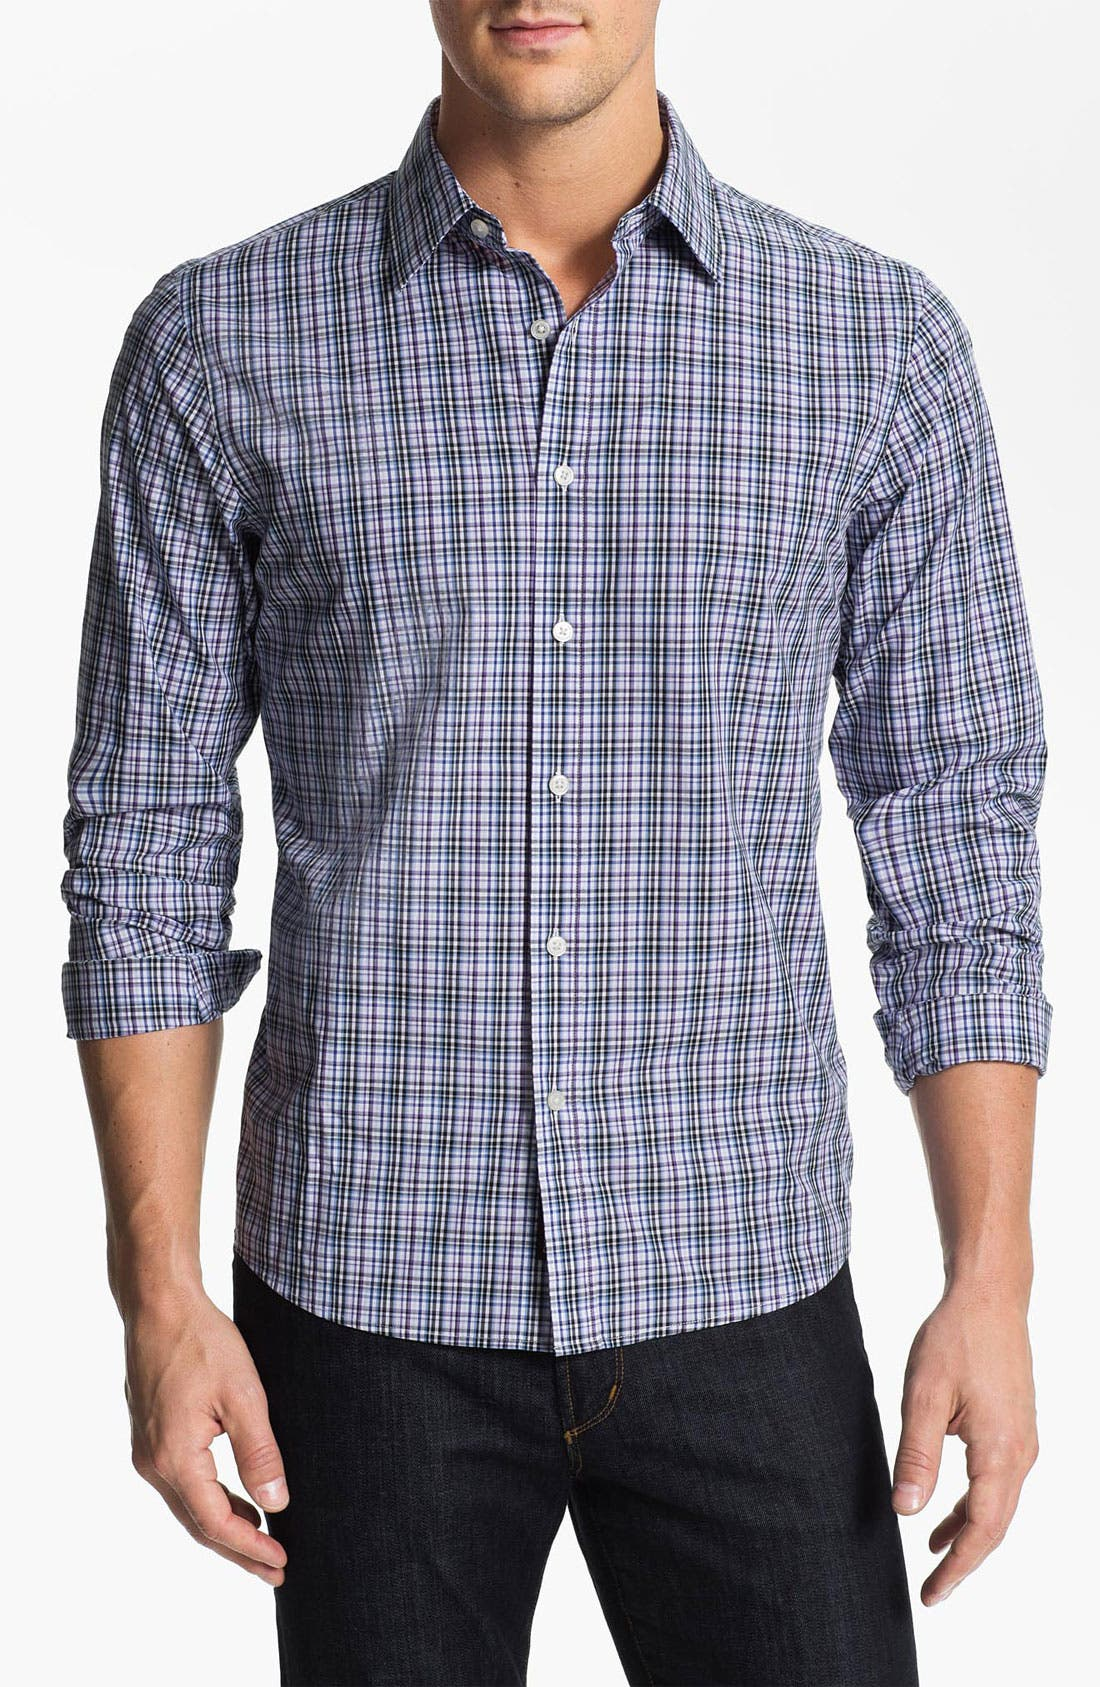 Alternate Image 1 Selected - Michael Kors 'Morgan Check' Sport Shirt